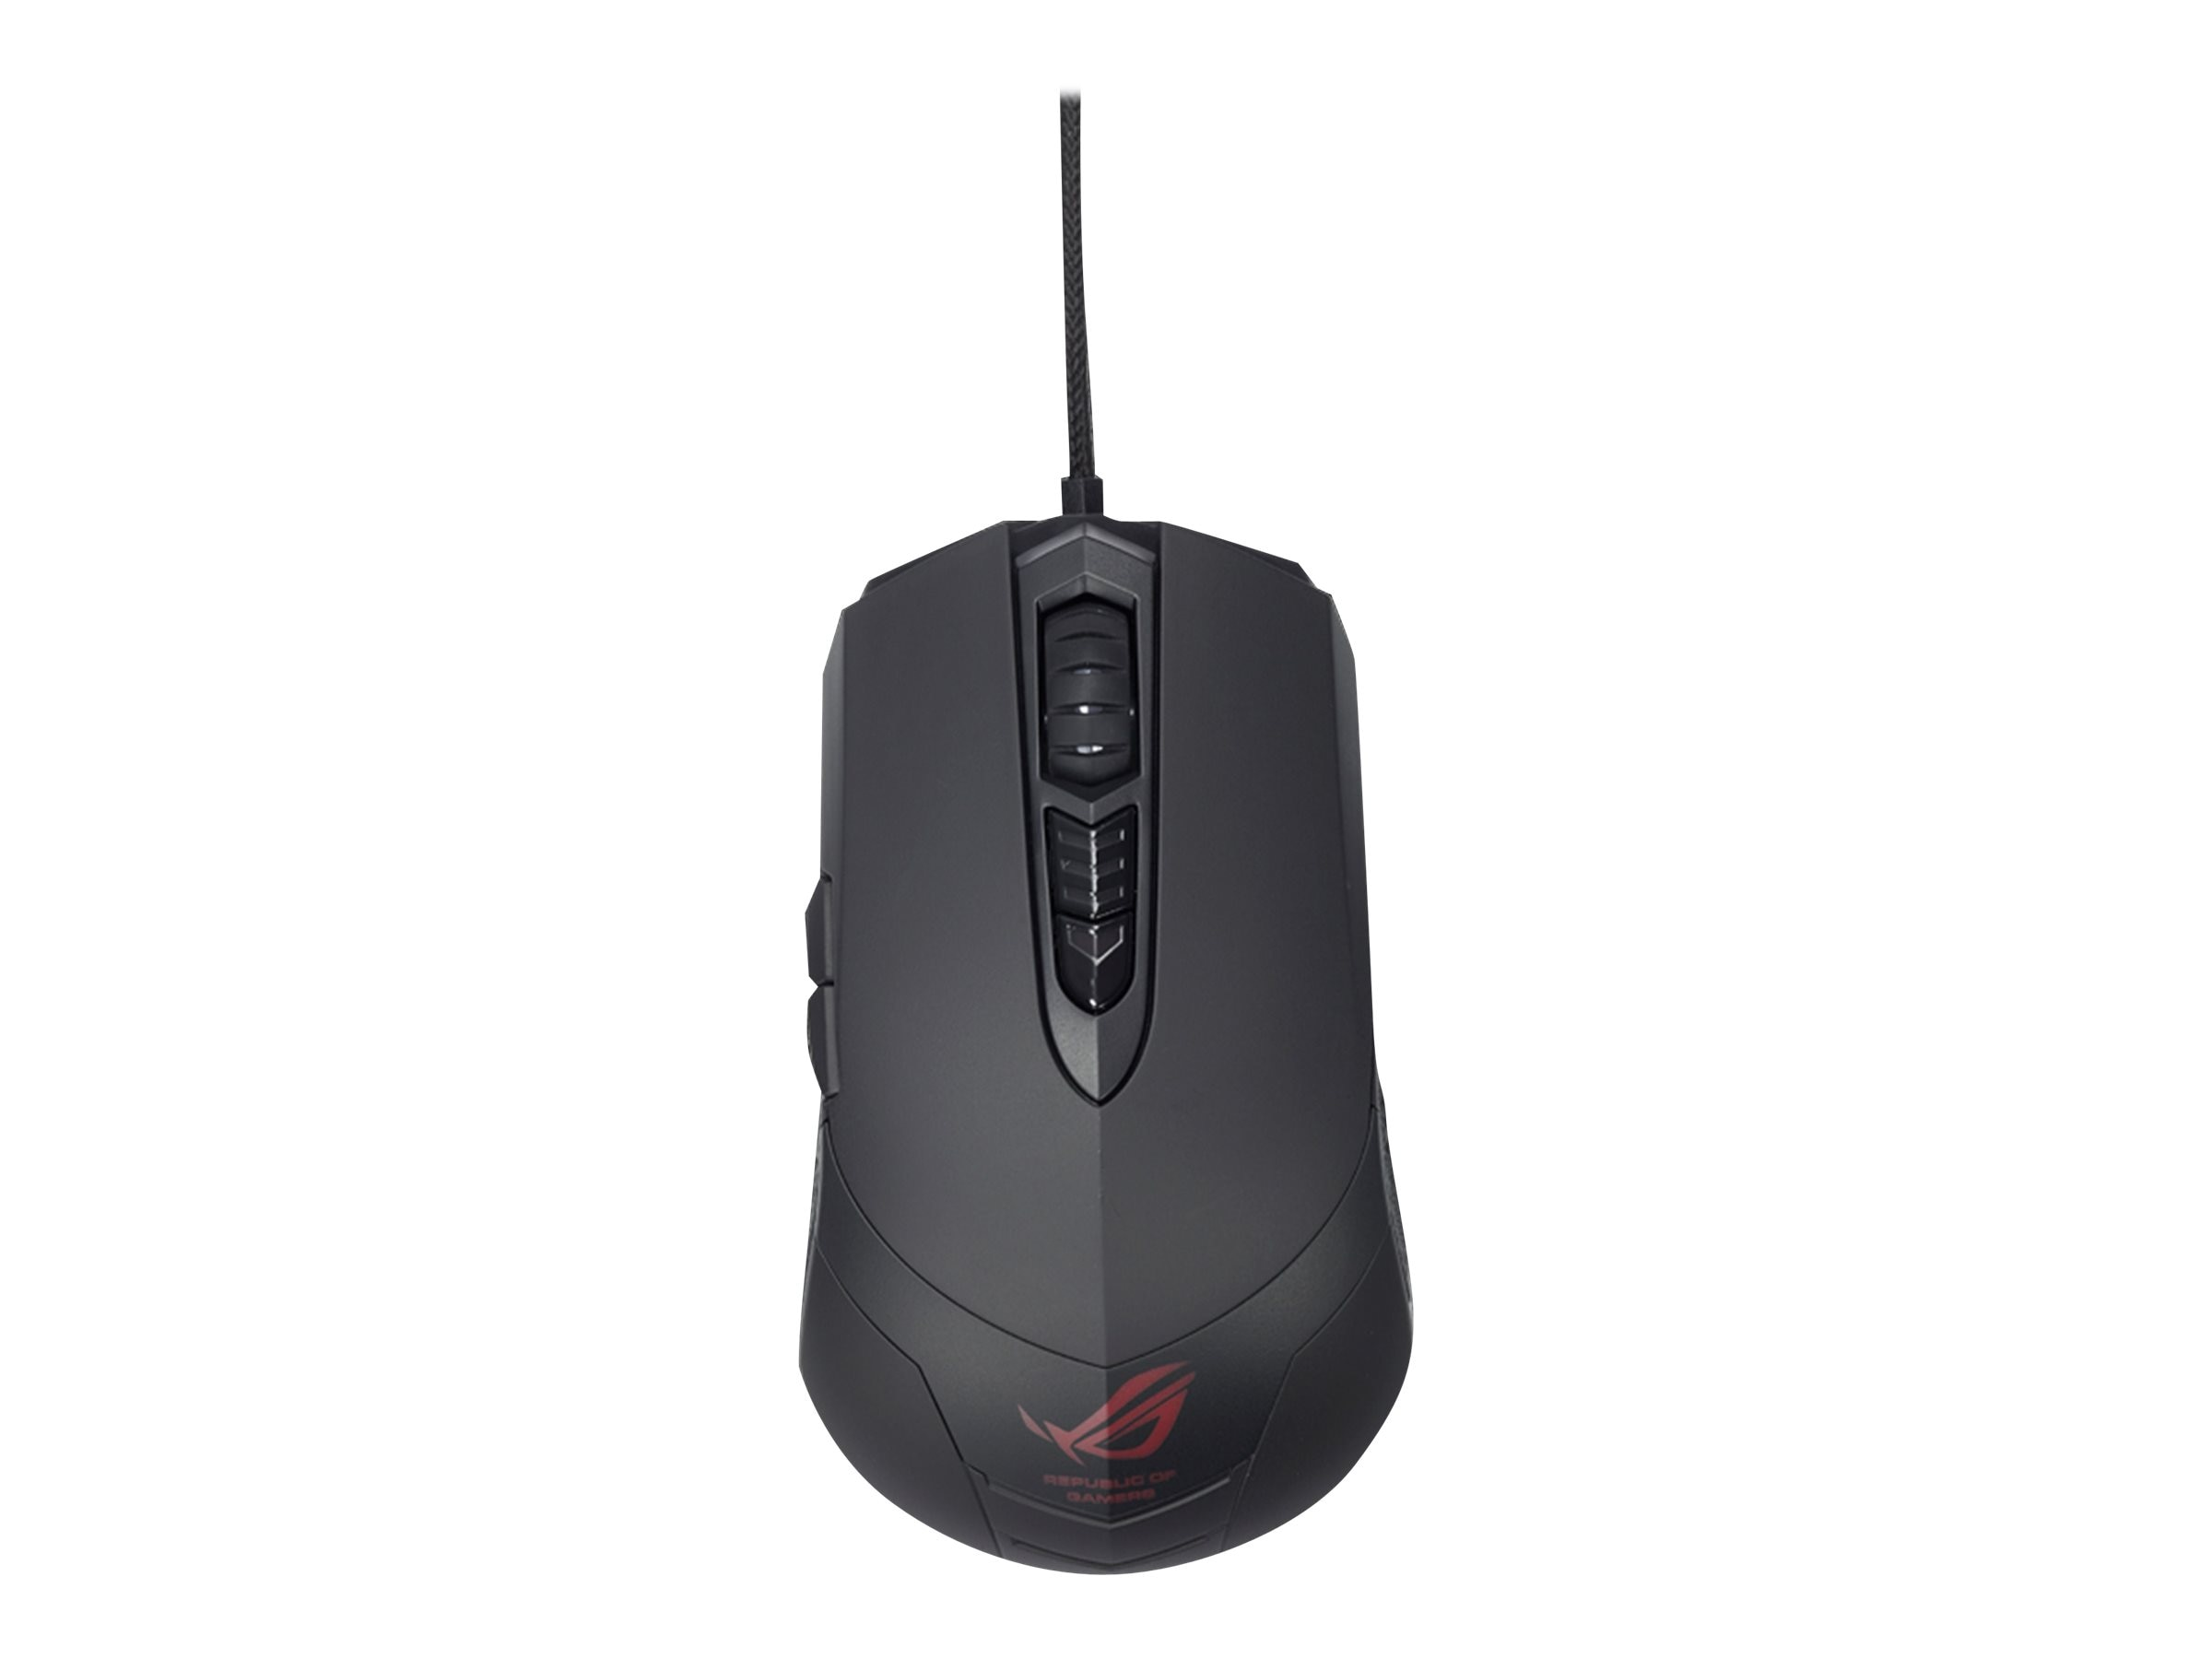 Asus ROG GX860 Wired Laser Mouse, Black, 90XB02C0-BMU000